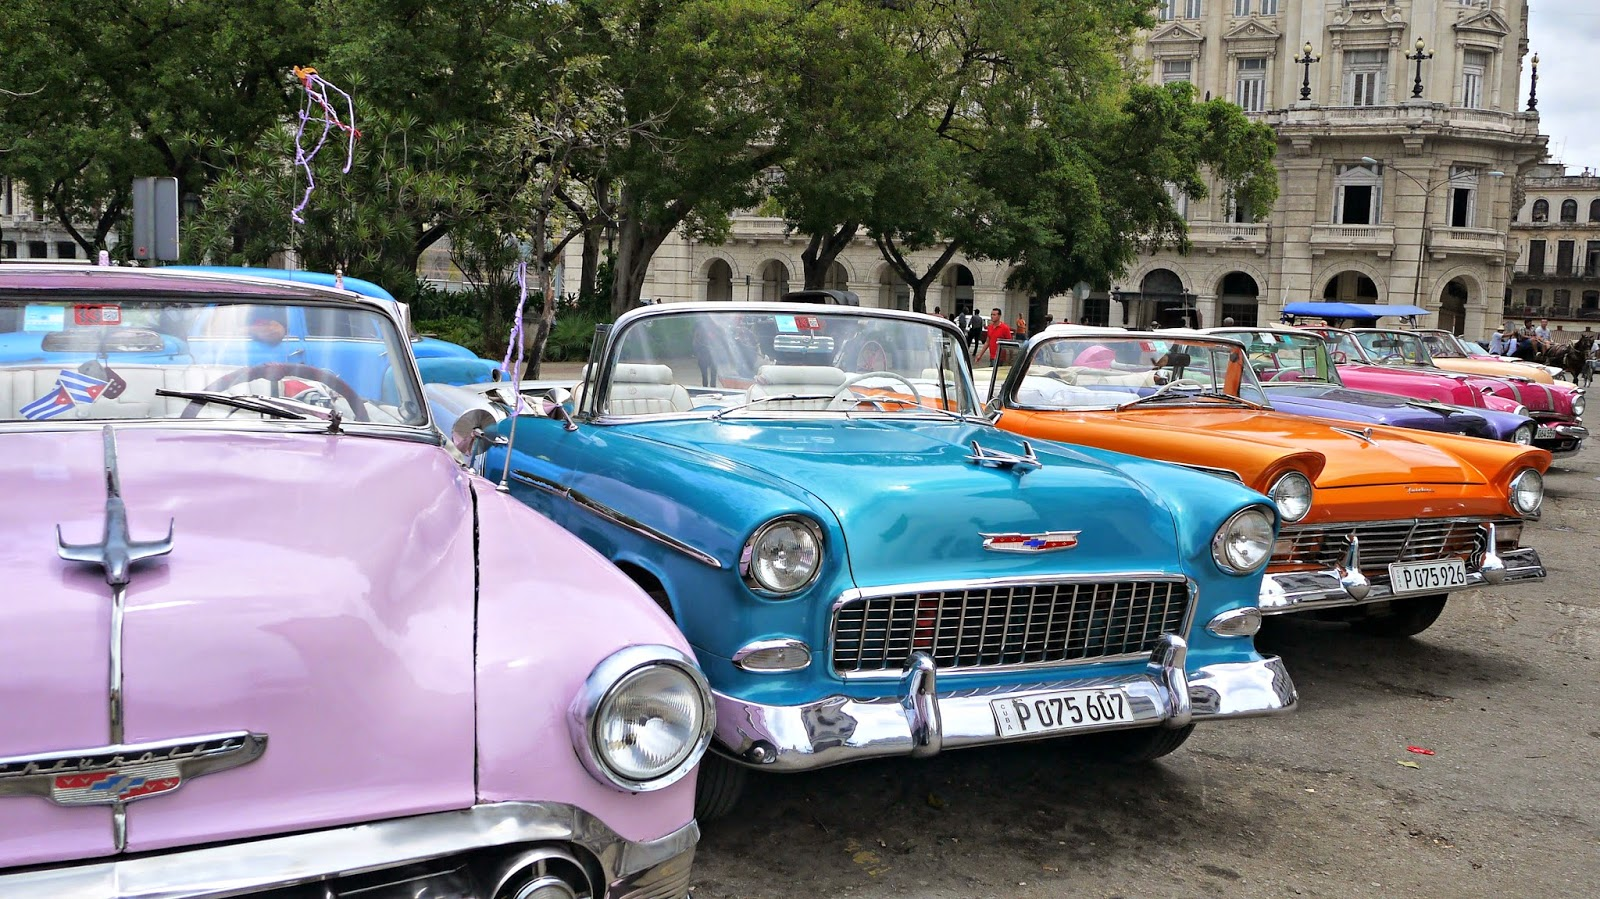 Lux London >> Havana, Cuba - Day 1. | LUX LIFE LONDON | A Luxury Lifestyle Blog